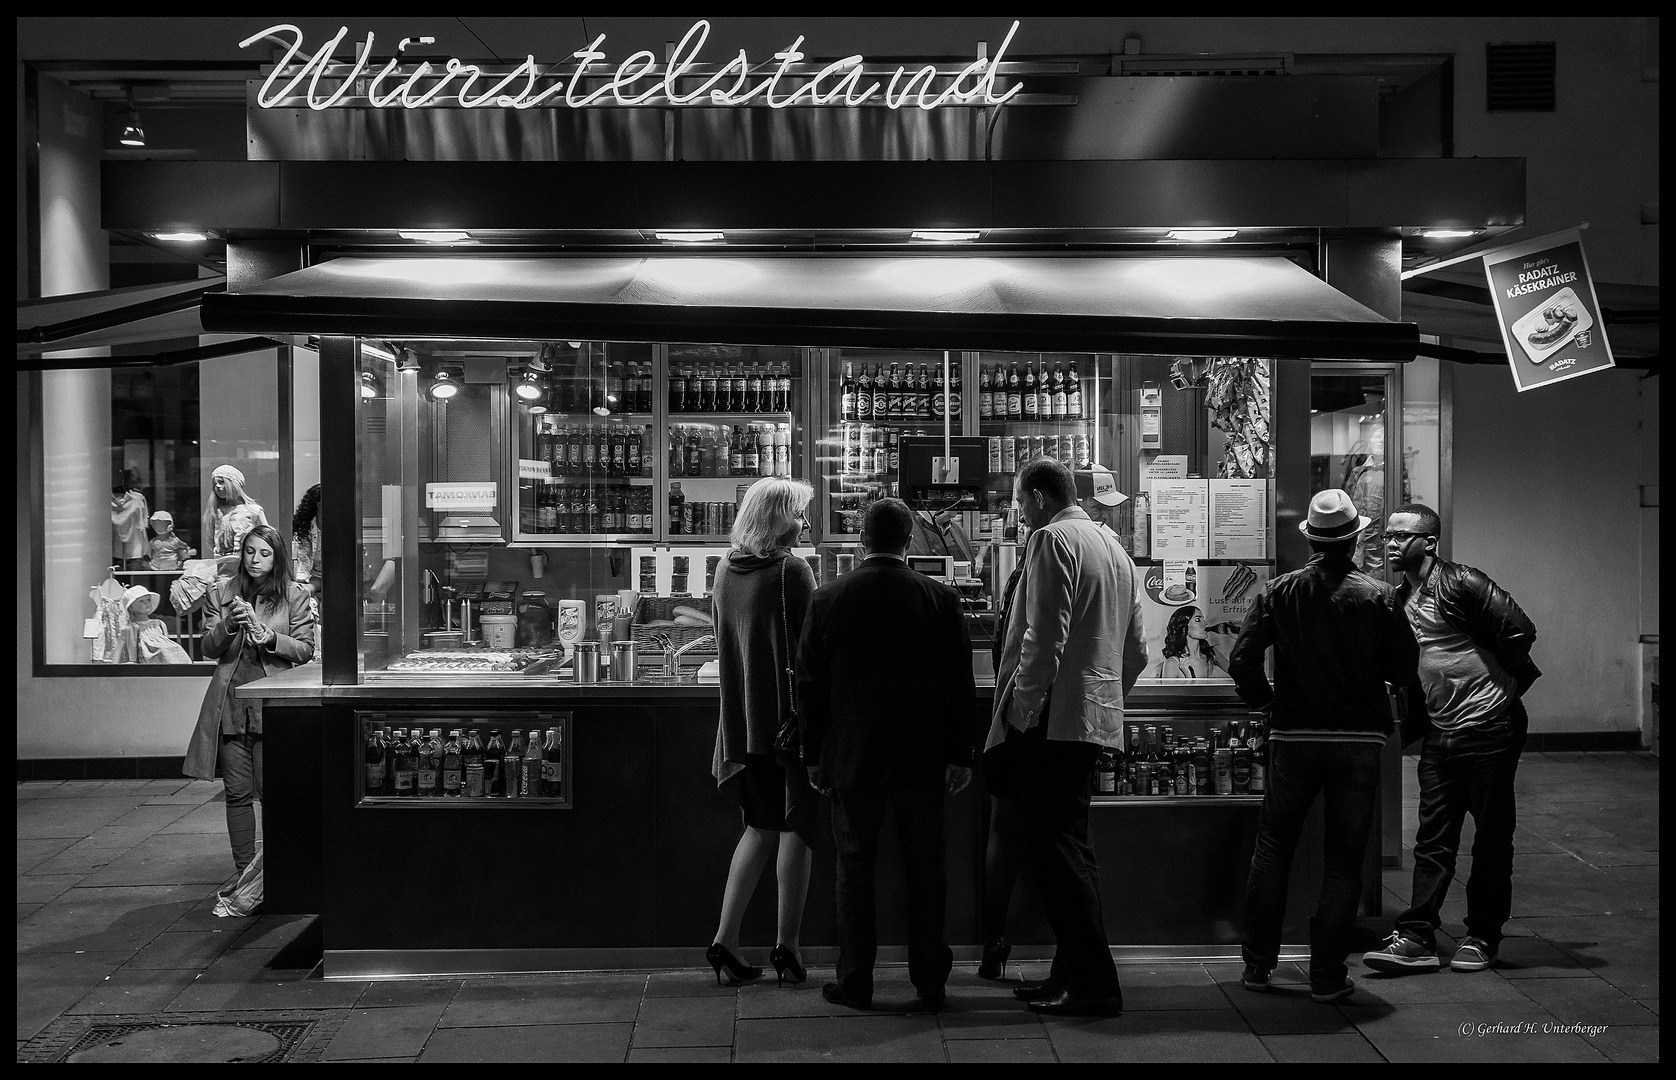 Vienna Nightlife III